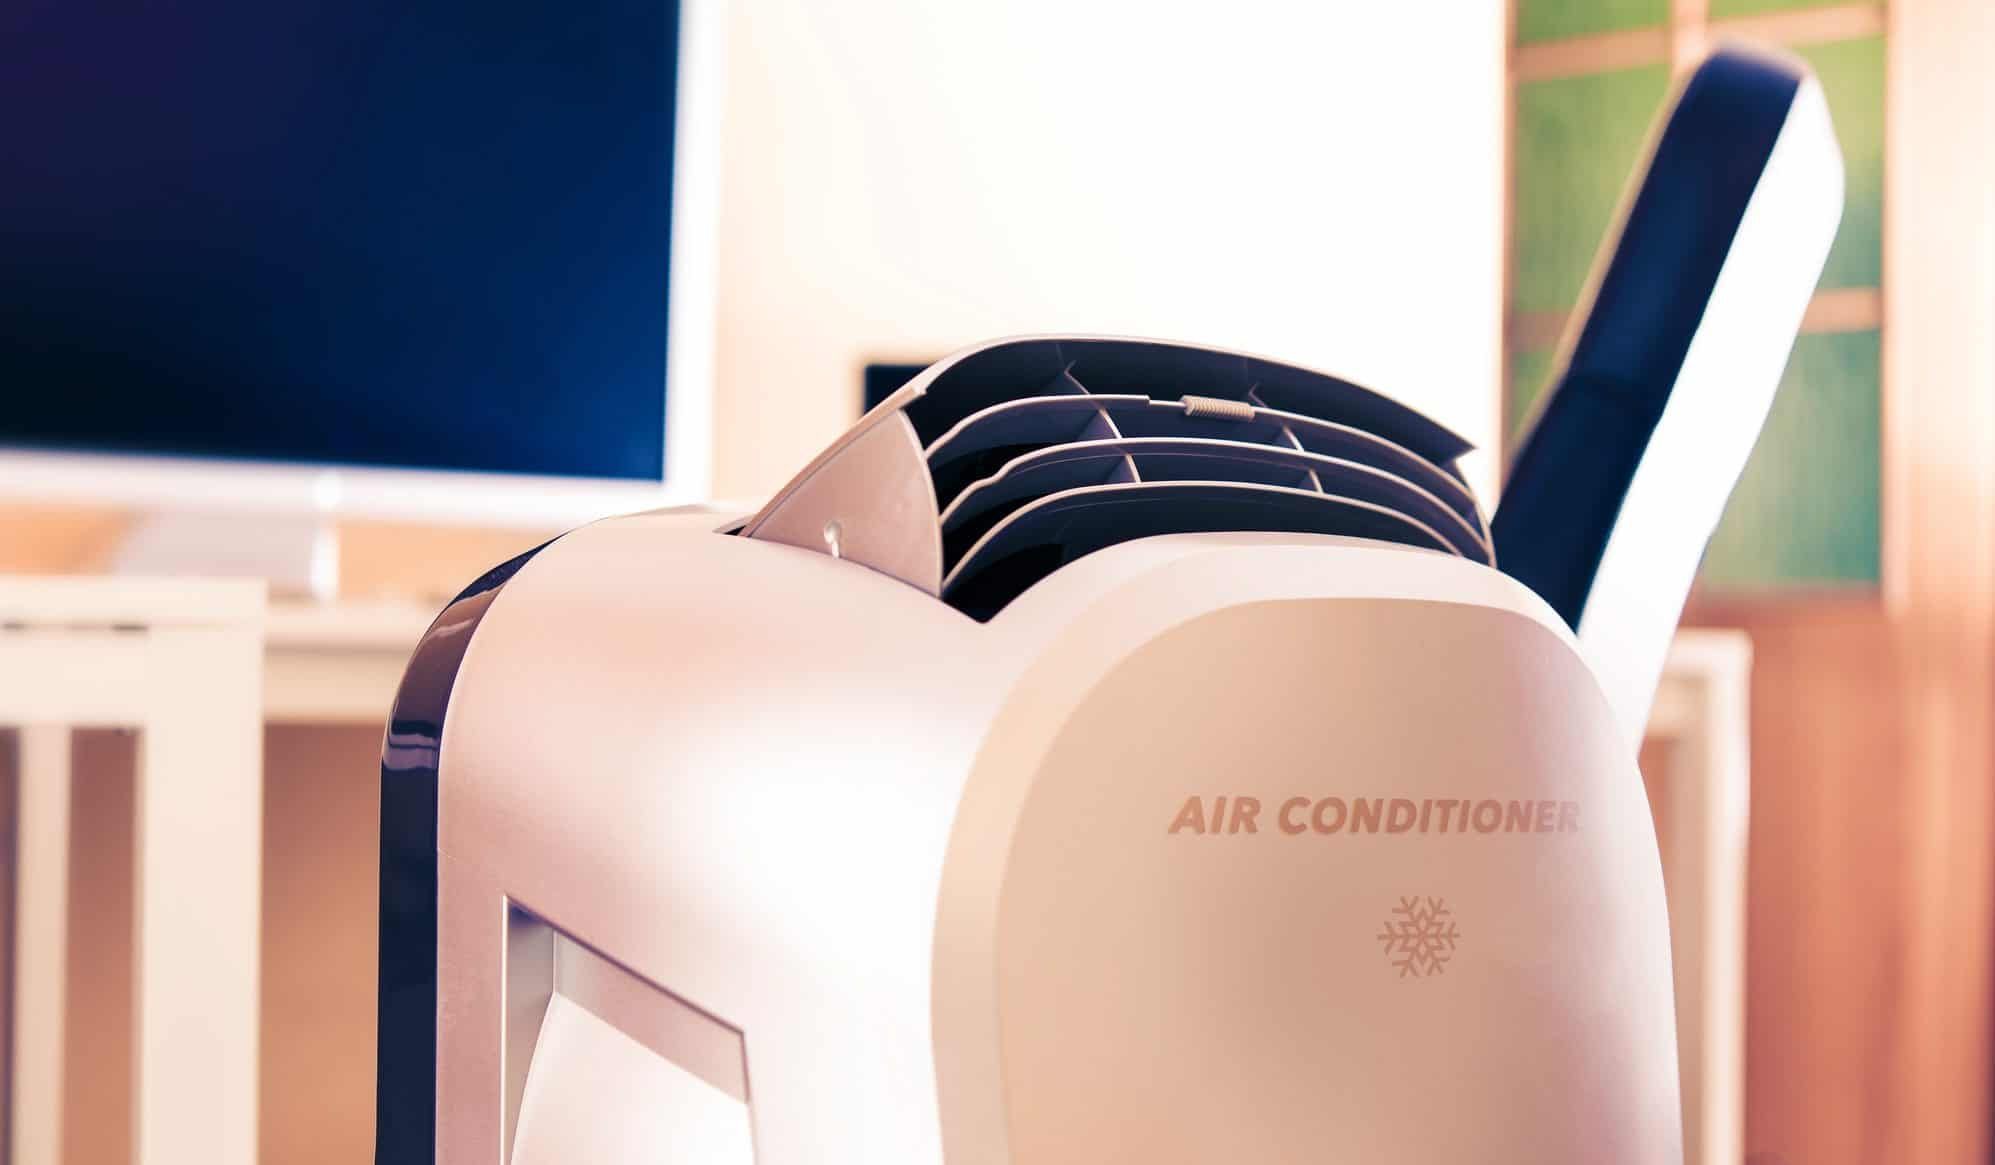 Notable Aspects To Consider Before Buying A Portable Air Conditioner